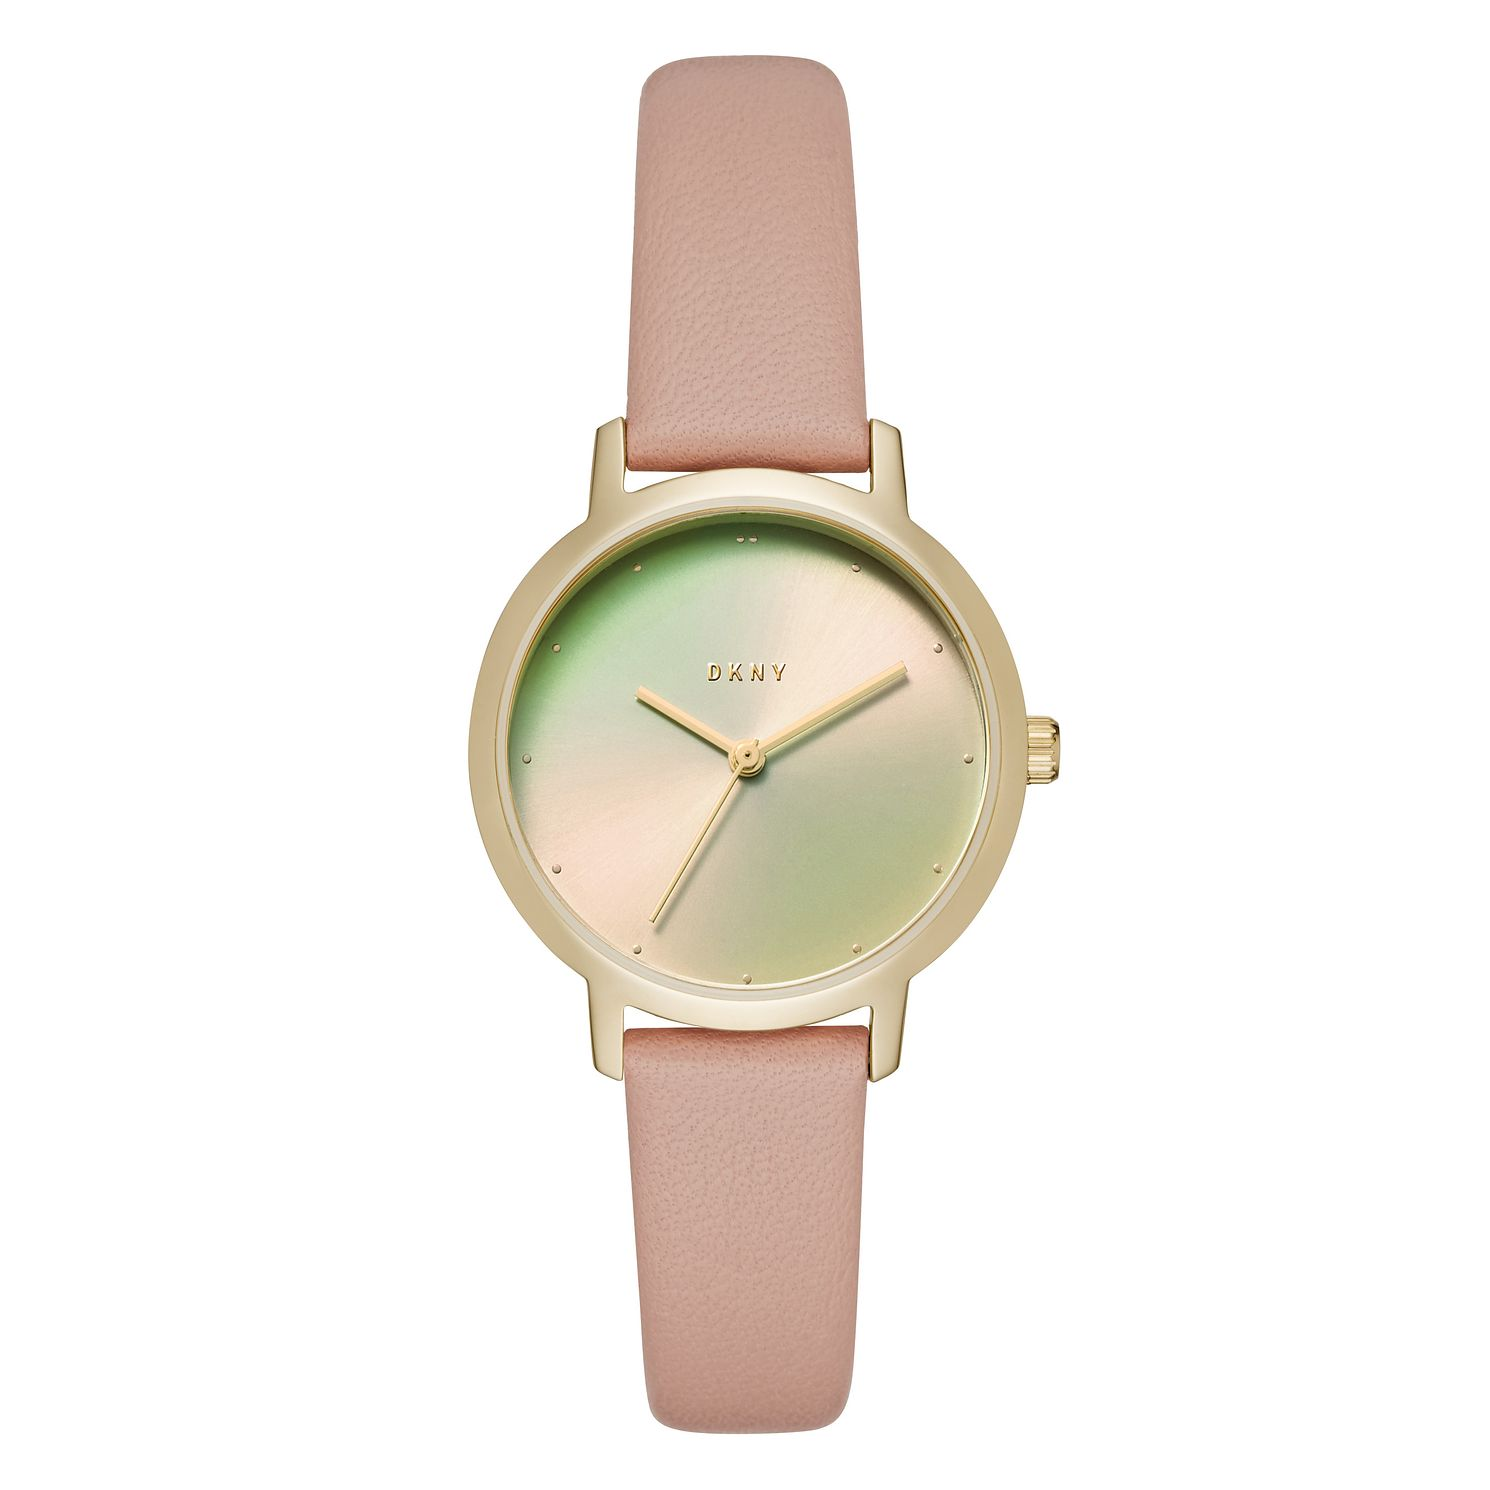 DKNY Ladies' Pink Leather Strap Watch - Product number 9103740